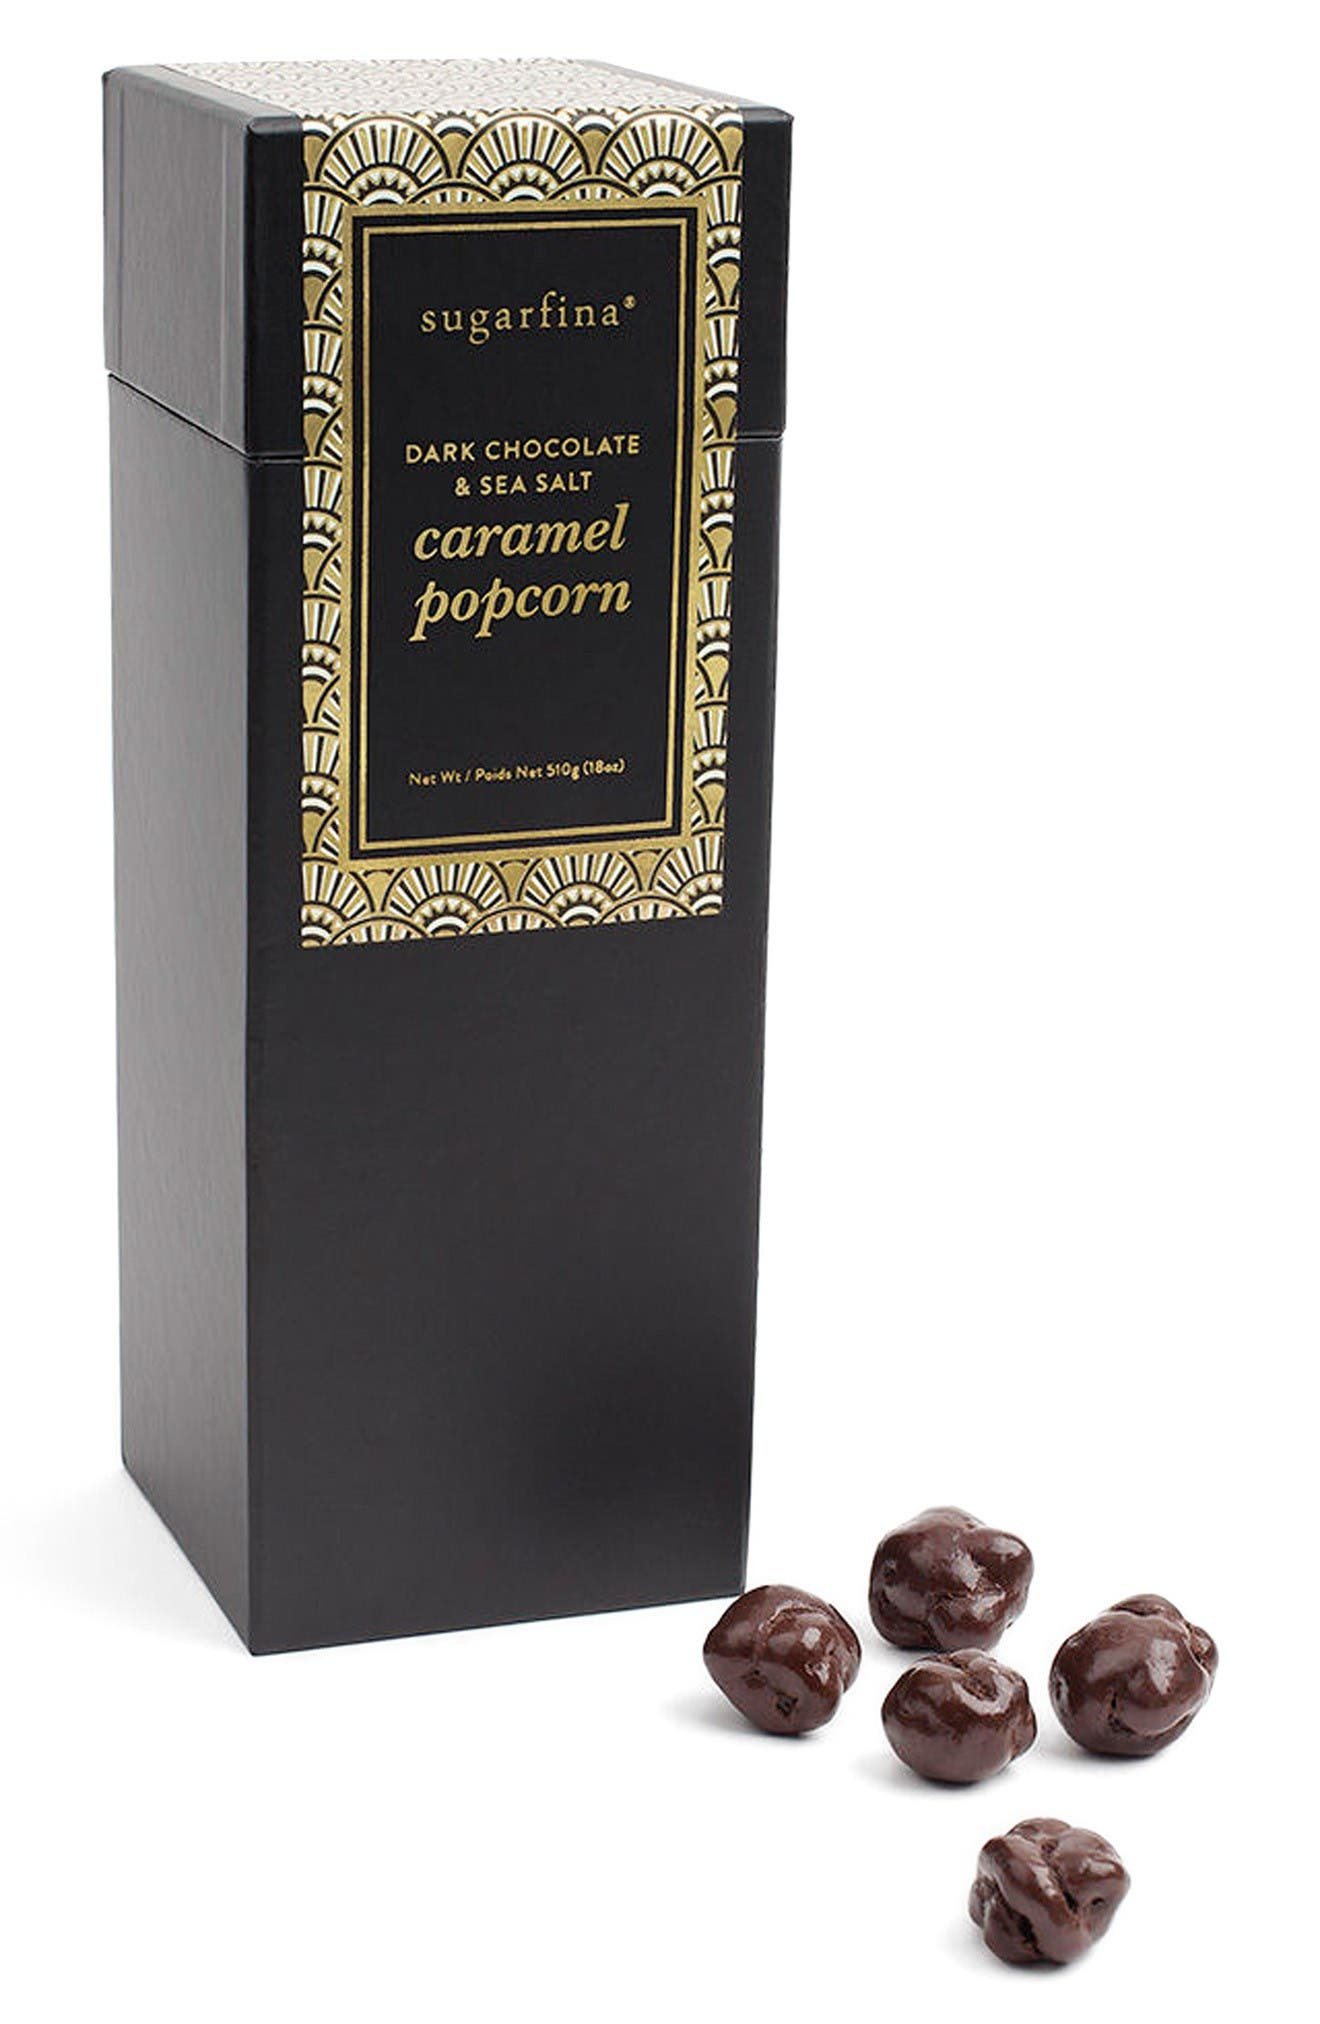 Alternate Image 1 Selected - sugarfina Dark Chocolate & Sea Salt Caramel Popcorn